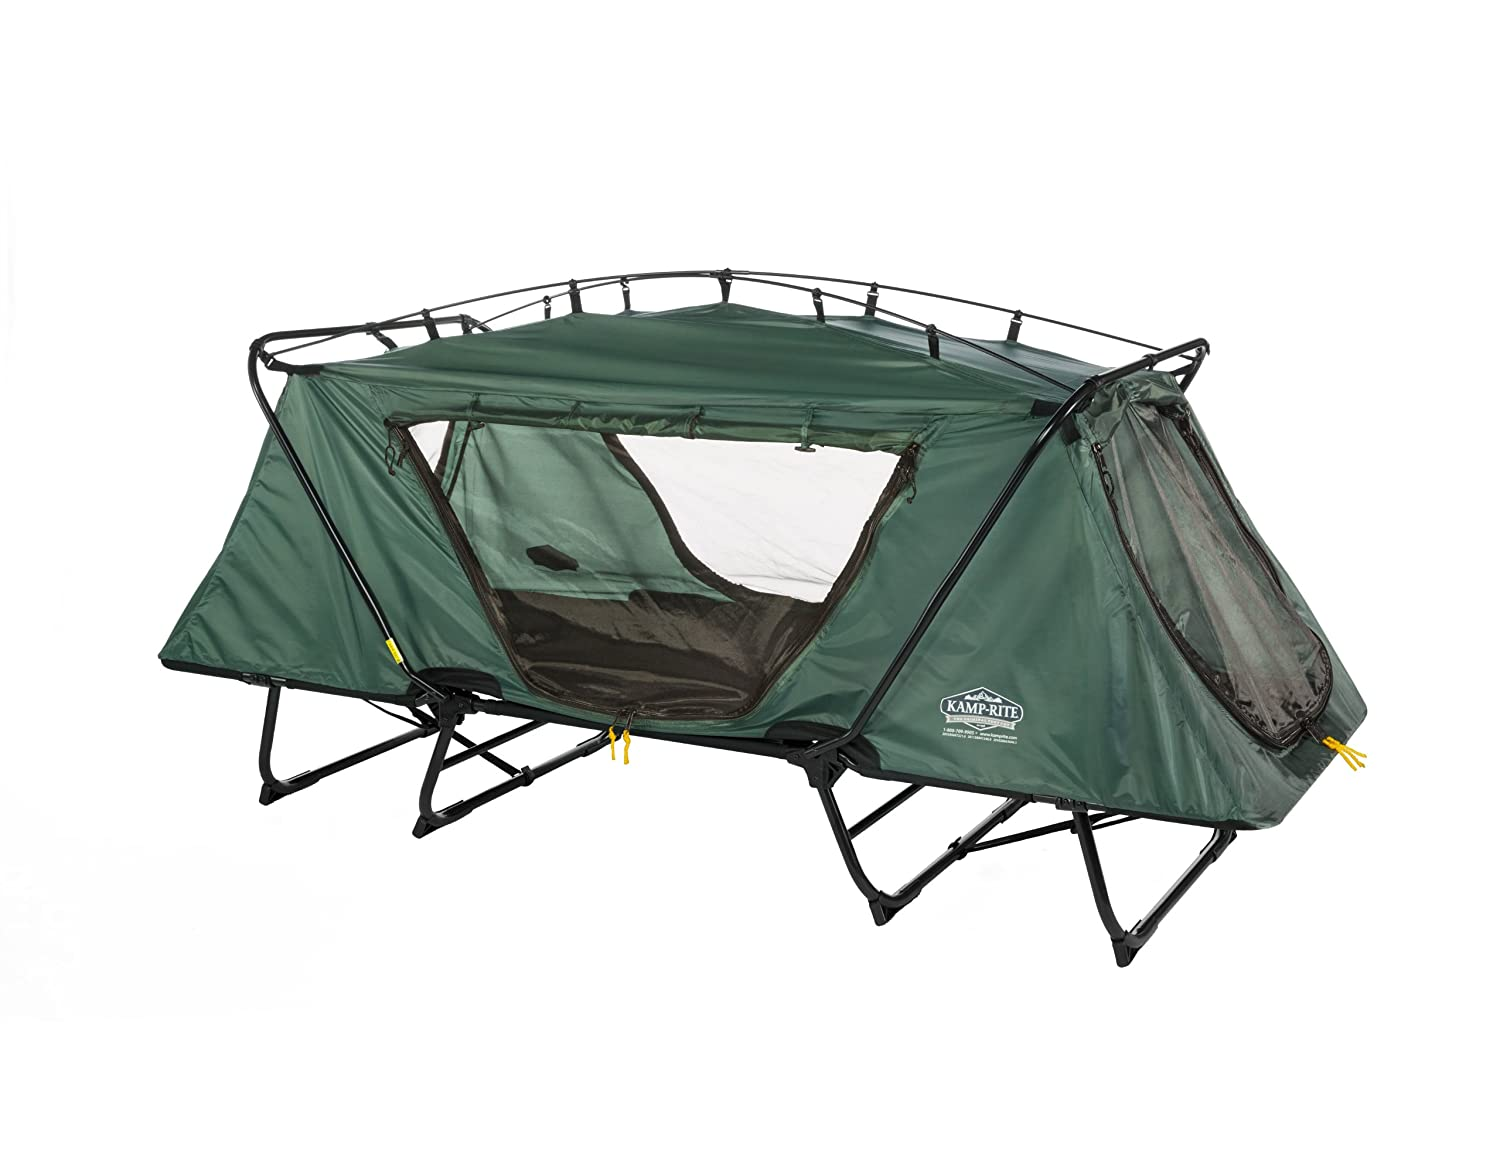 Folding Sleeping Chair Oversize Tent Travel Cot Camping Gear Hiking Outdoor